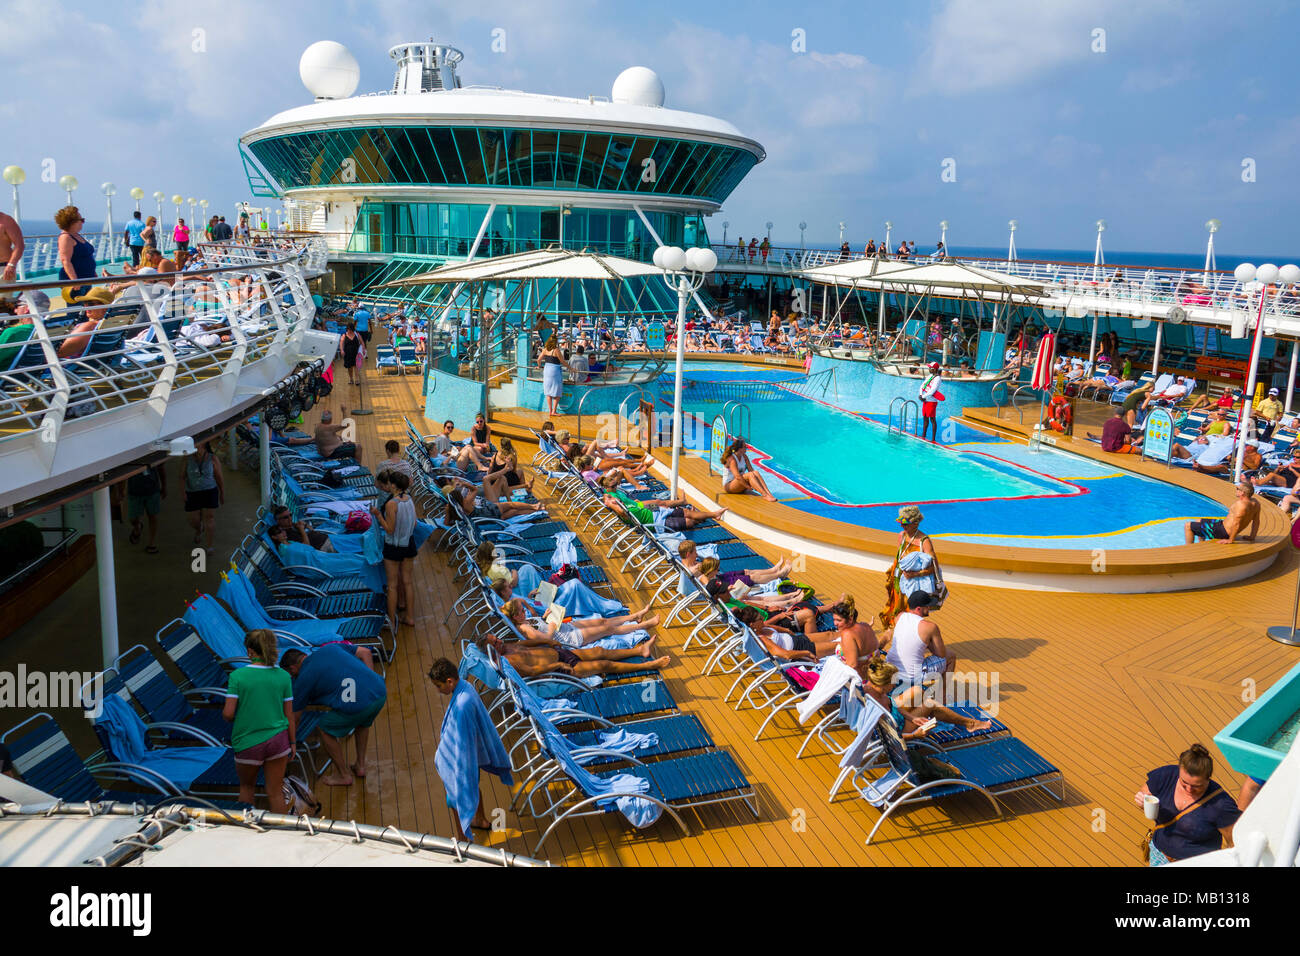 Poolside Activities aboard the cruise ship Royal